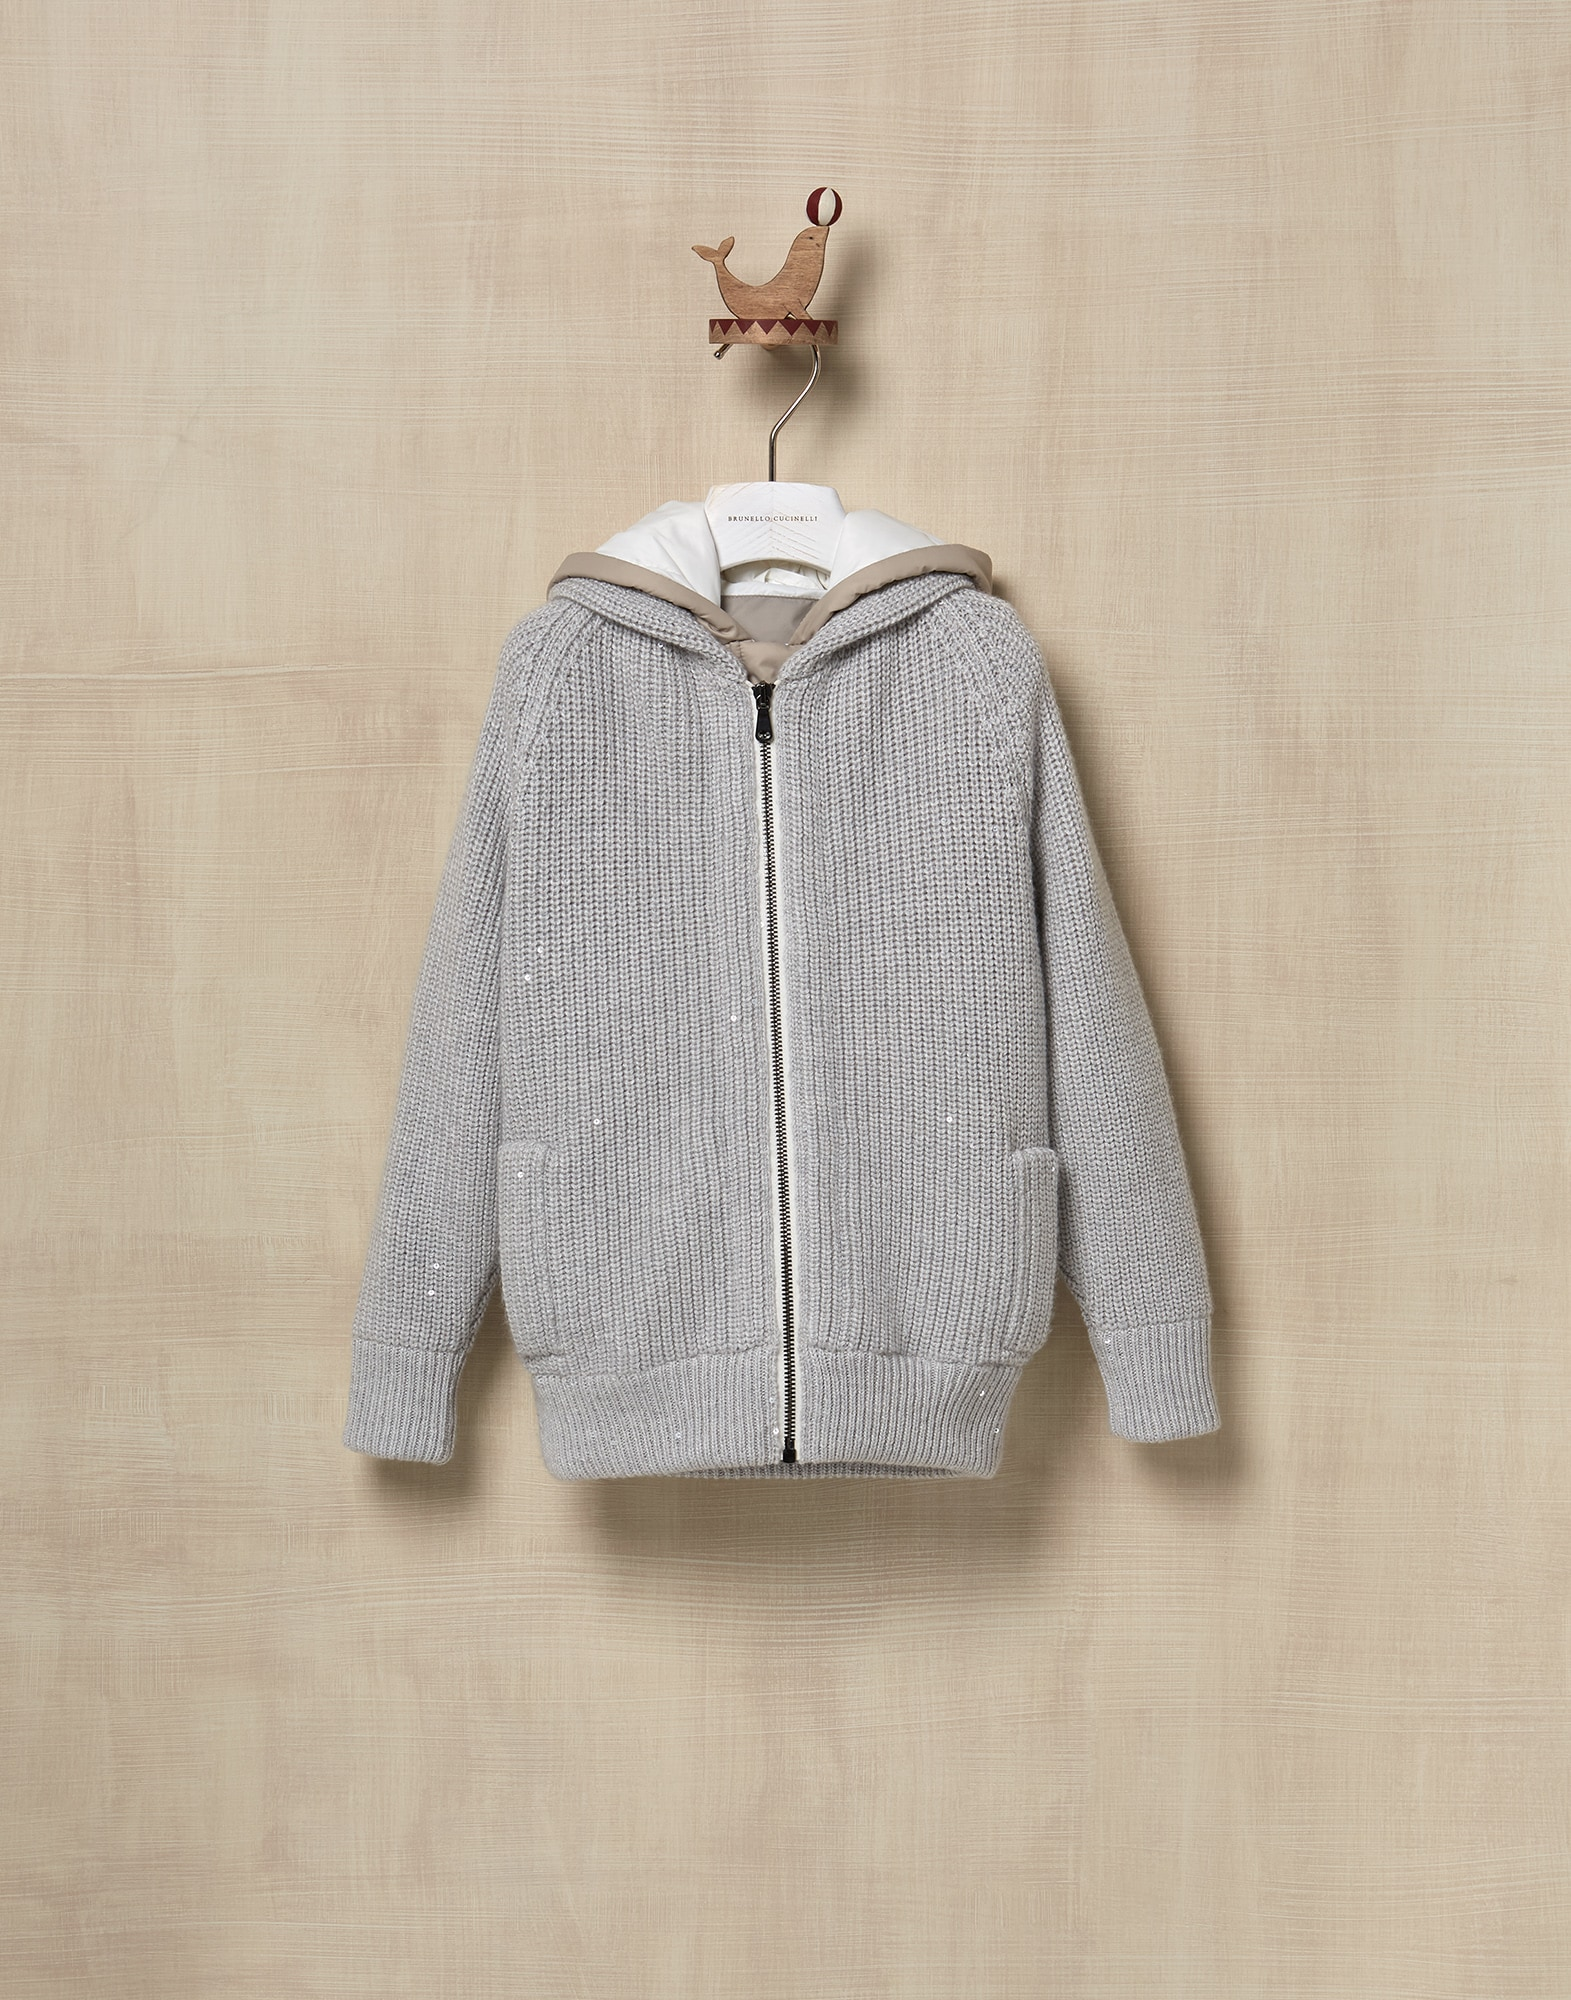 Outerwear Jacket Fog Girl 0 - Brunello Cucinelli